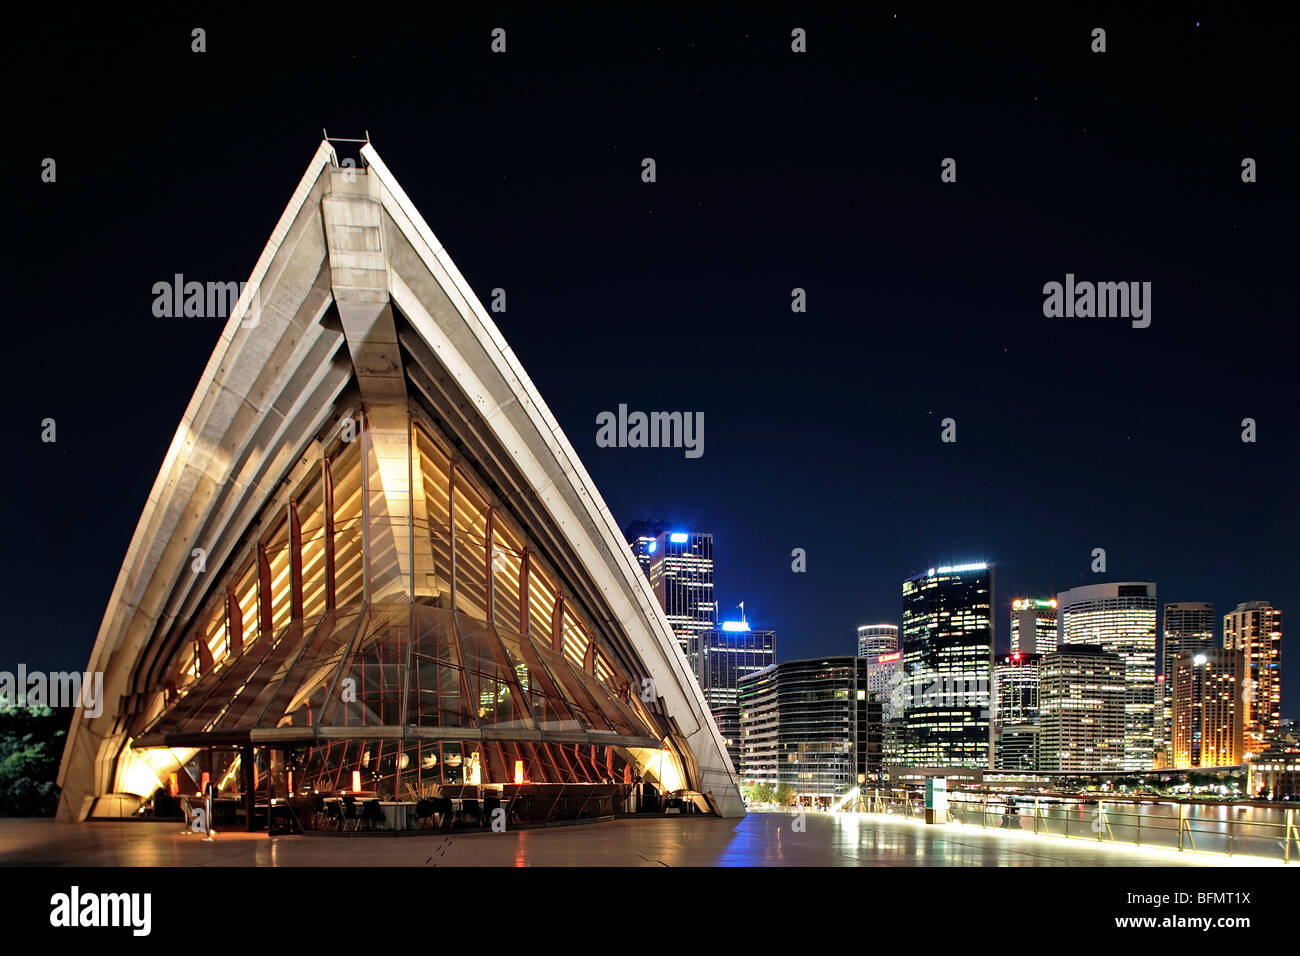 Australia, New South Wales, Sydney,  Kirribilli, The Rocks, Bennelong, Guillaume at Bennelong Restaurant by night. - Stock Image